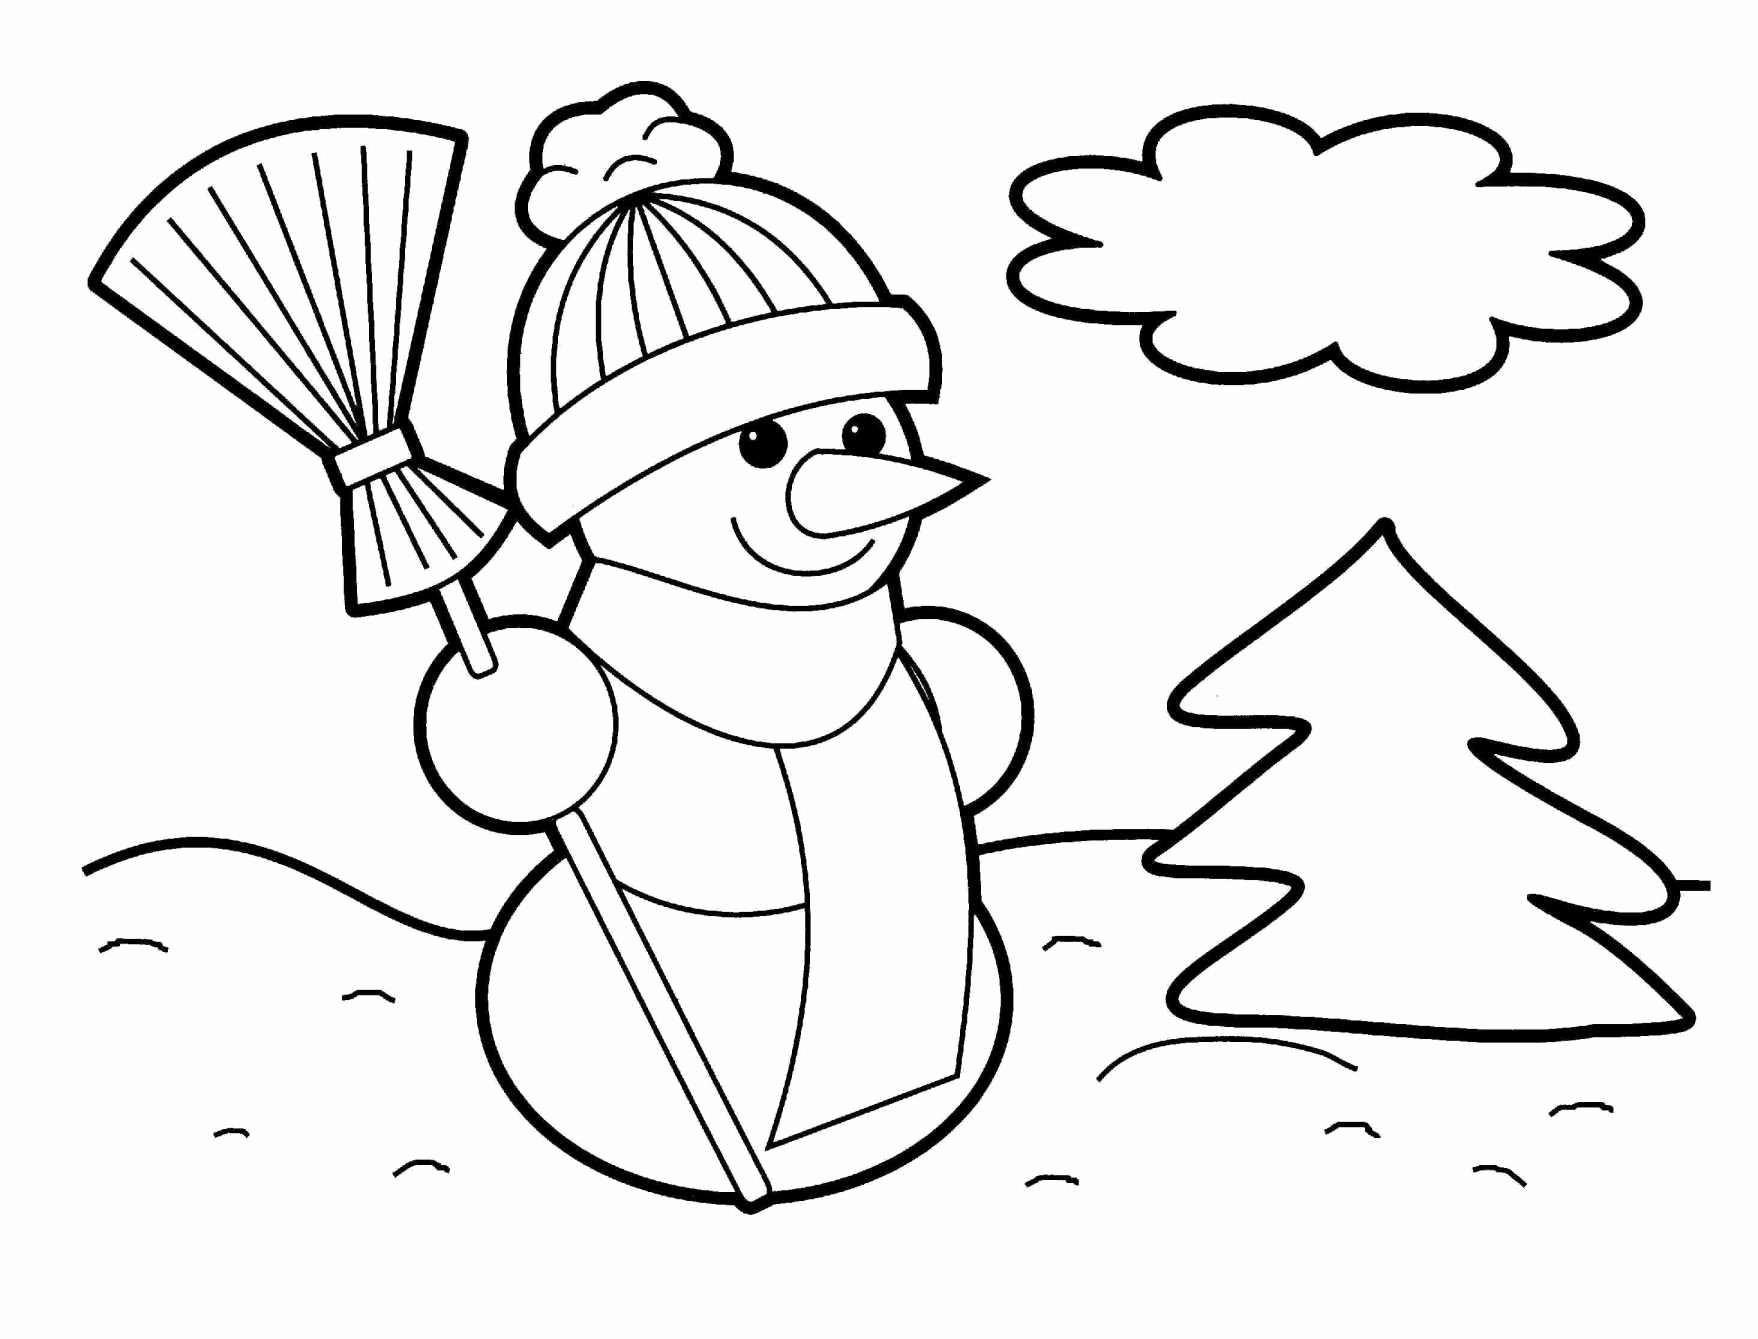 Christmas Colouring In Pages For Preschoolers With Free Printable Color Preschool House Valid To Print